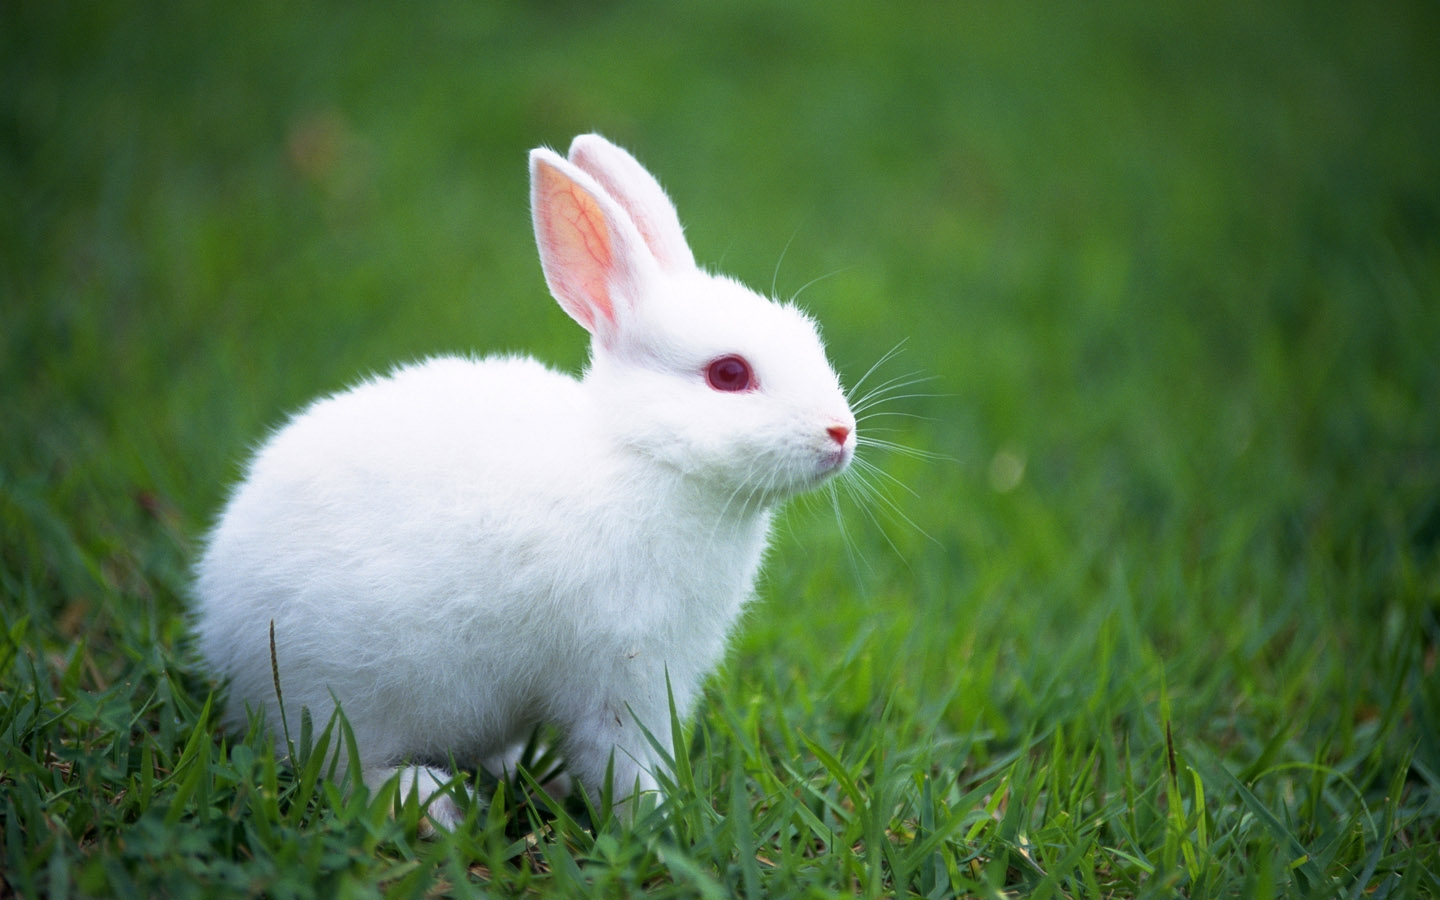 File:White Bunny Wallpaper 1440x900 wallpaperhere.jpg